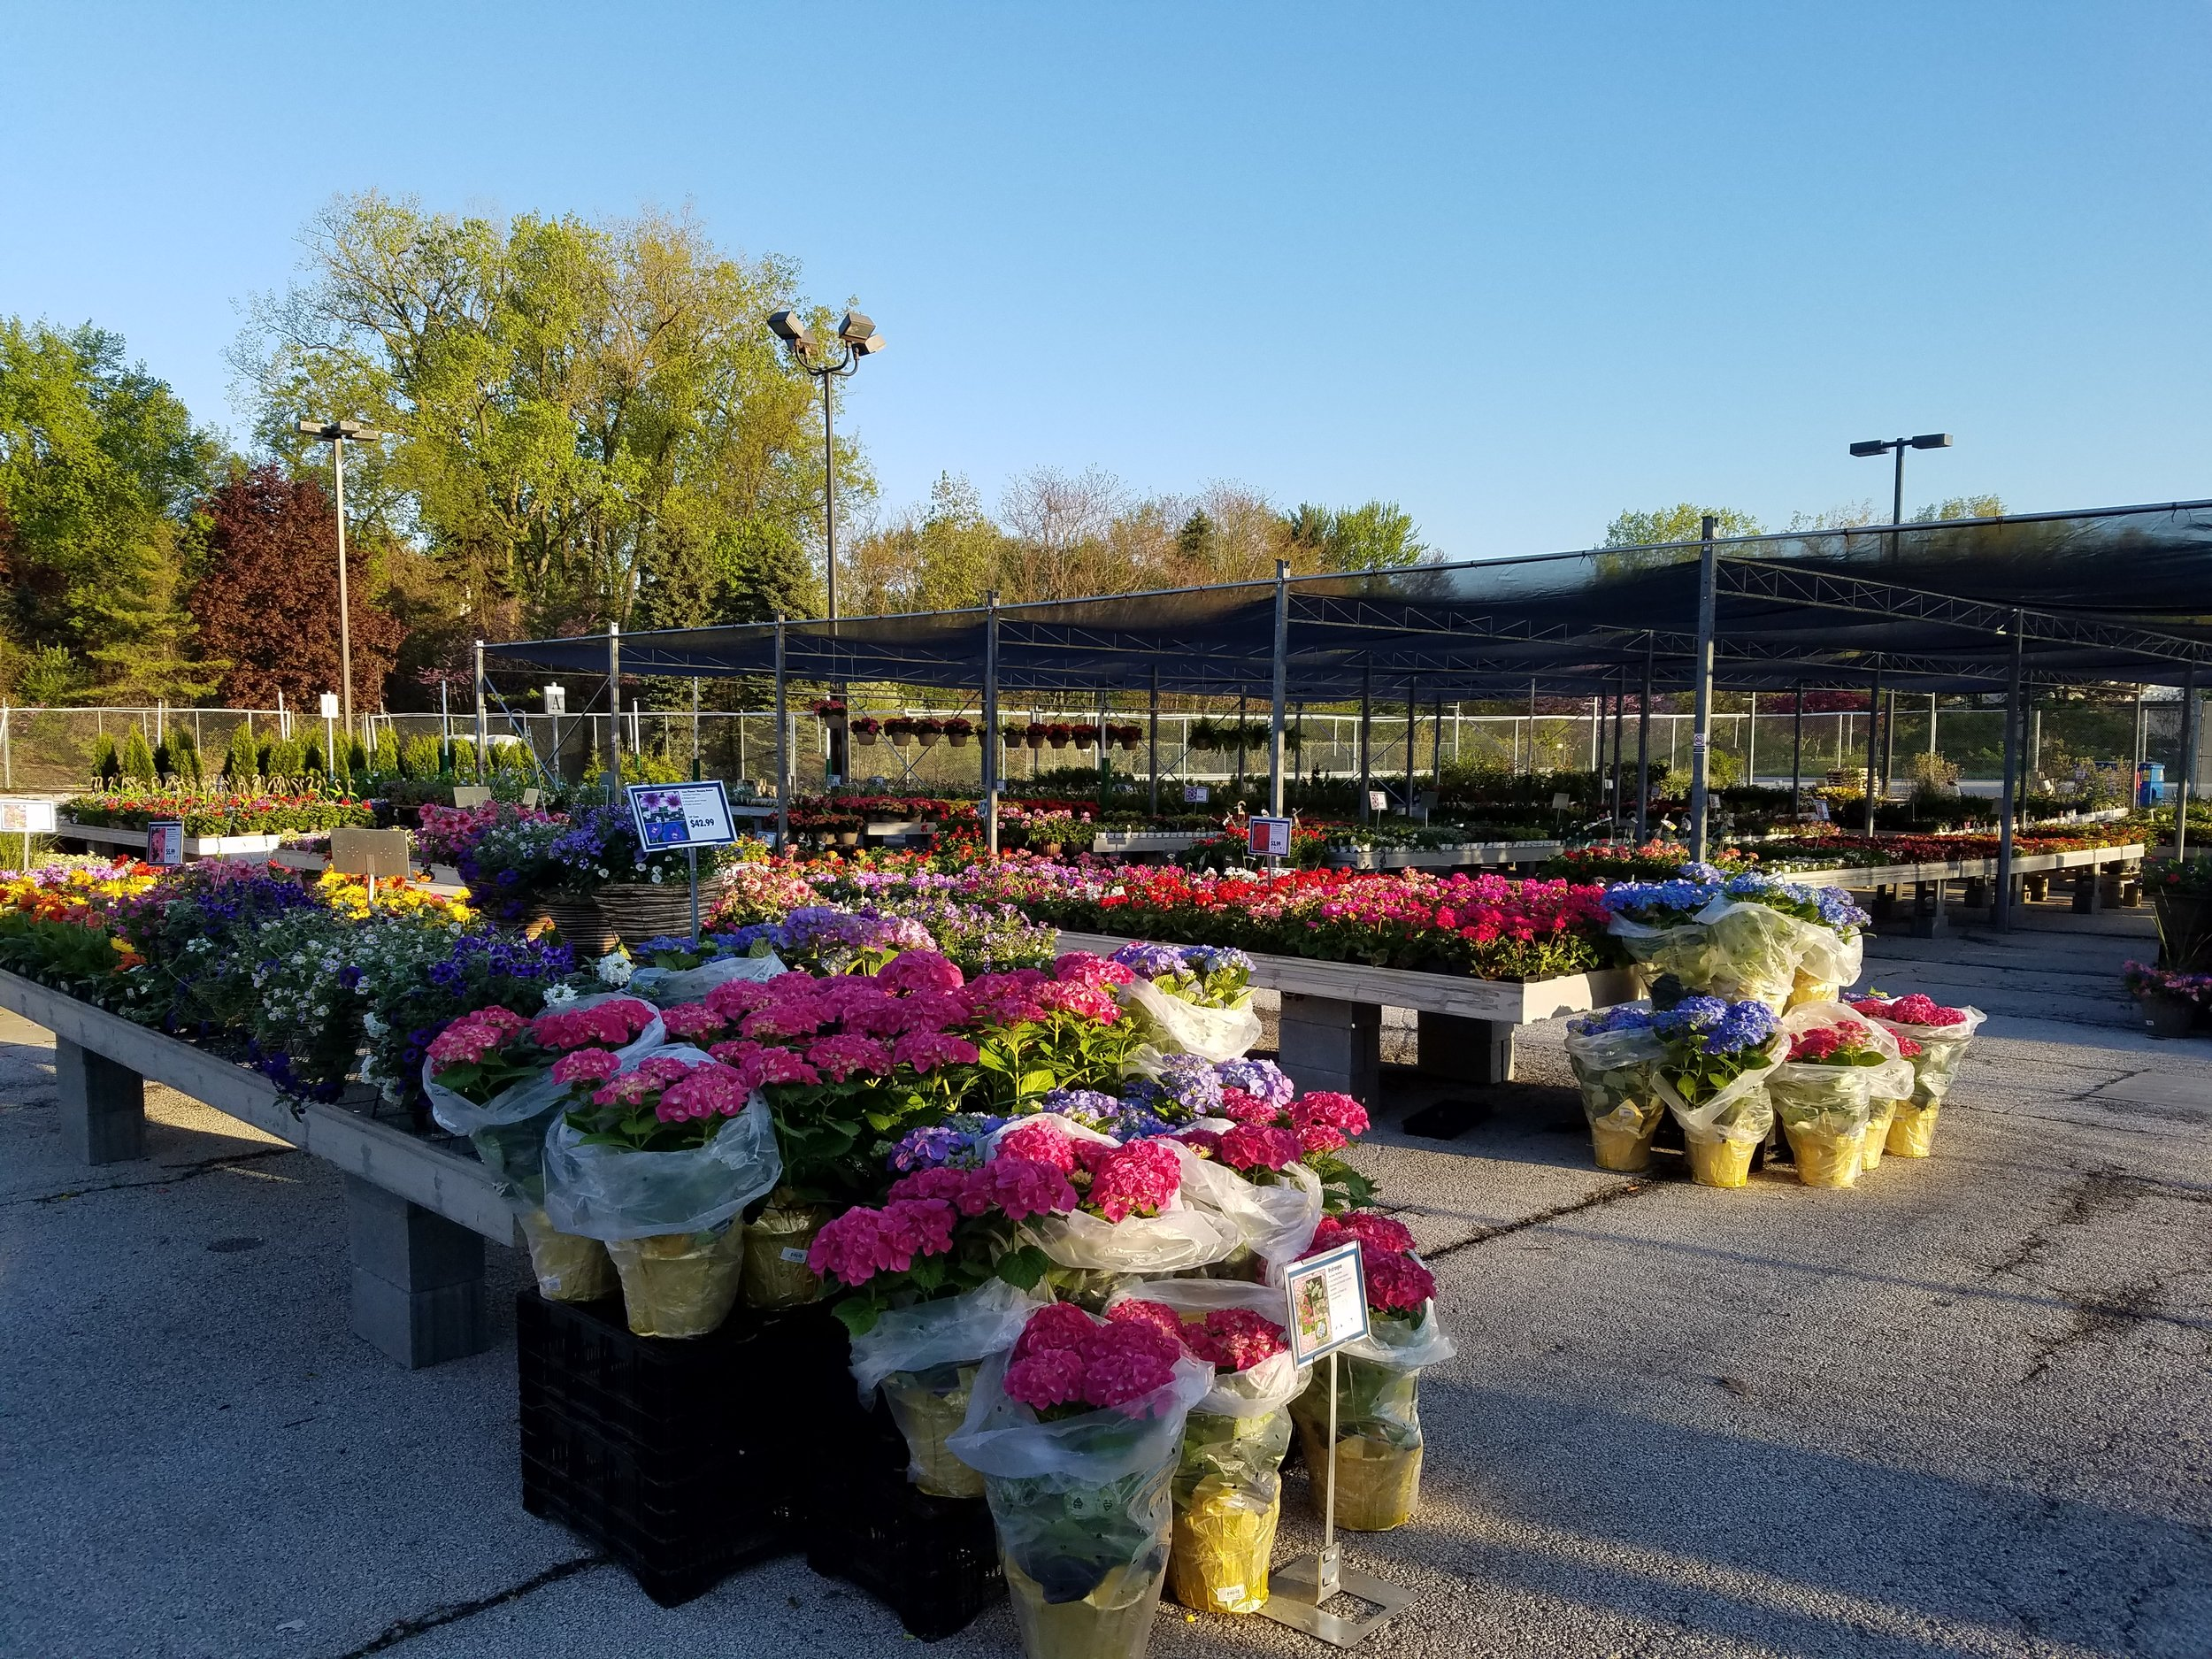 OPEN DAILY - Flower Market Hours:MON. - FRI. 10AM - 5PMSAT. - SUN. 10AM - 4PMPhone Number:(419) 922 - 9272Address:4701 Talmadge RoadToledo, OH 43623(We are located in the former Anderson's Toledo Garden Center)